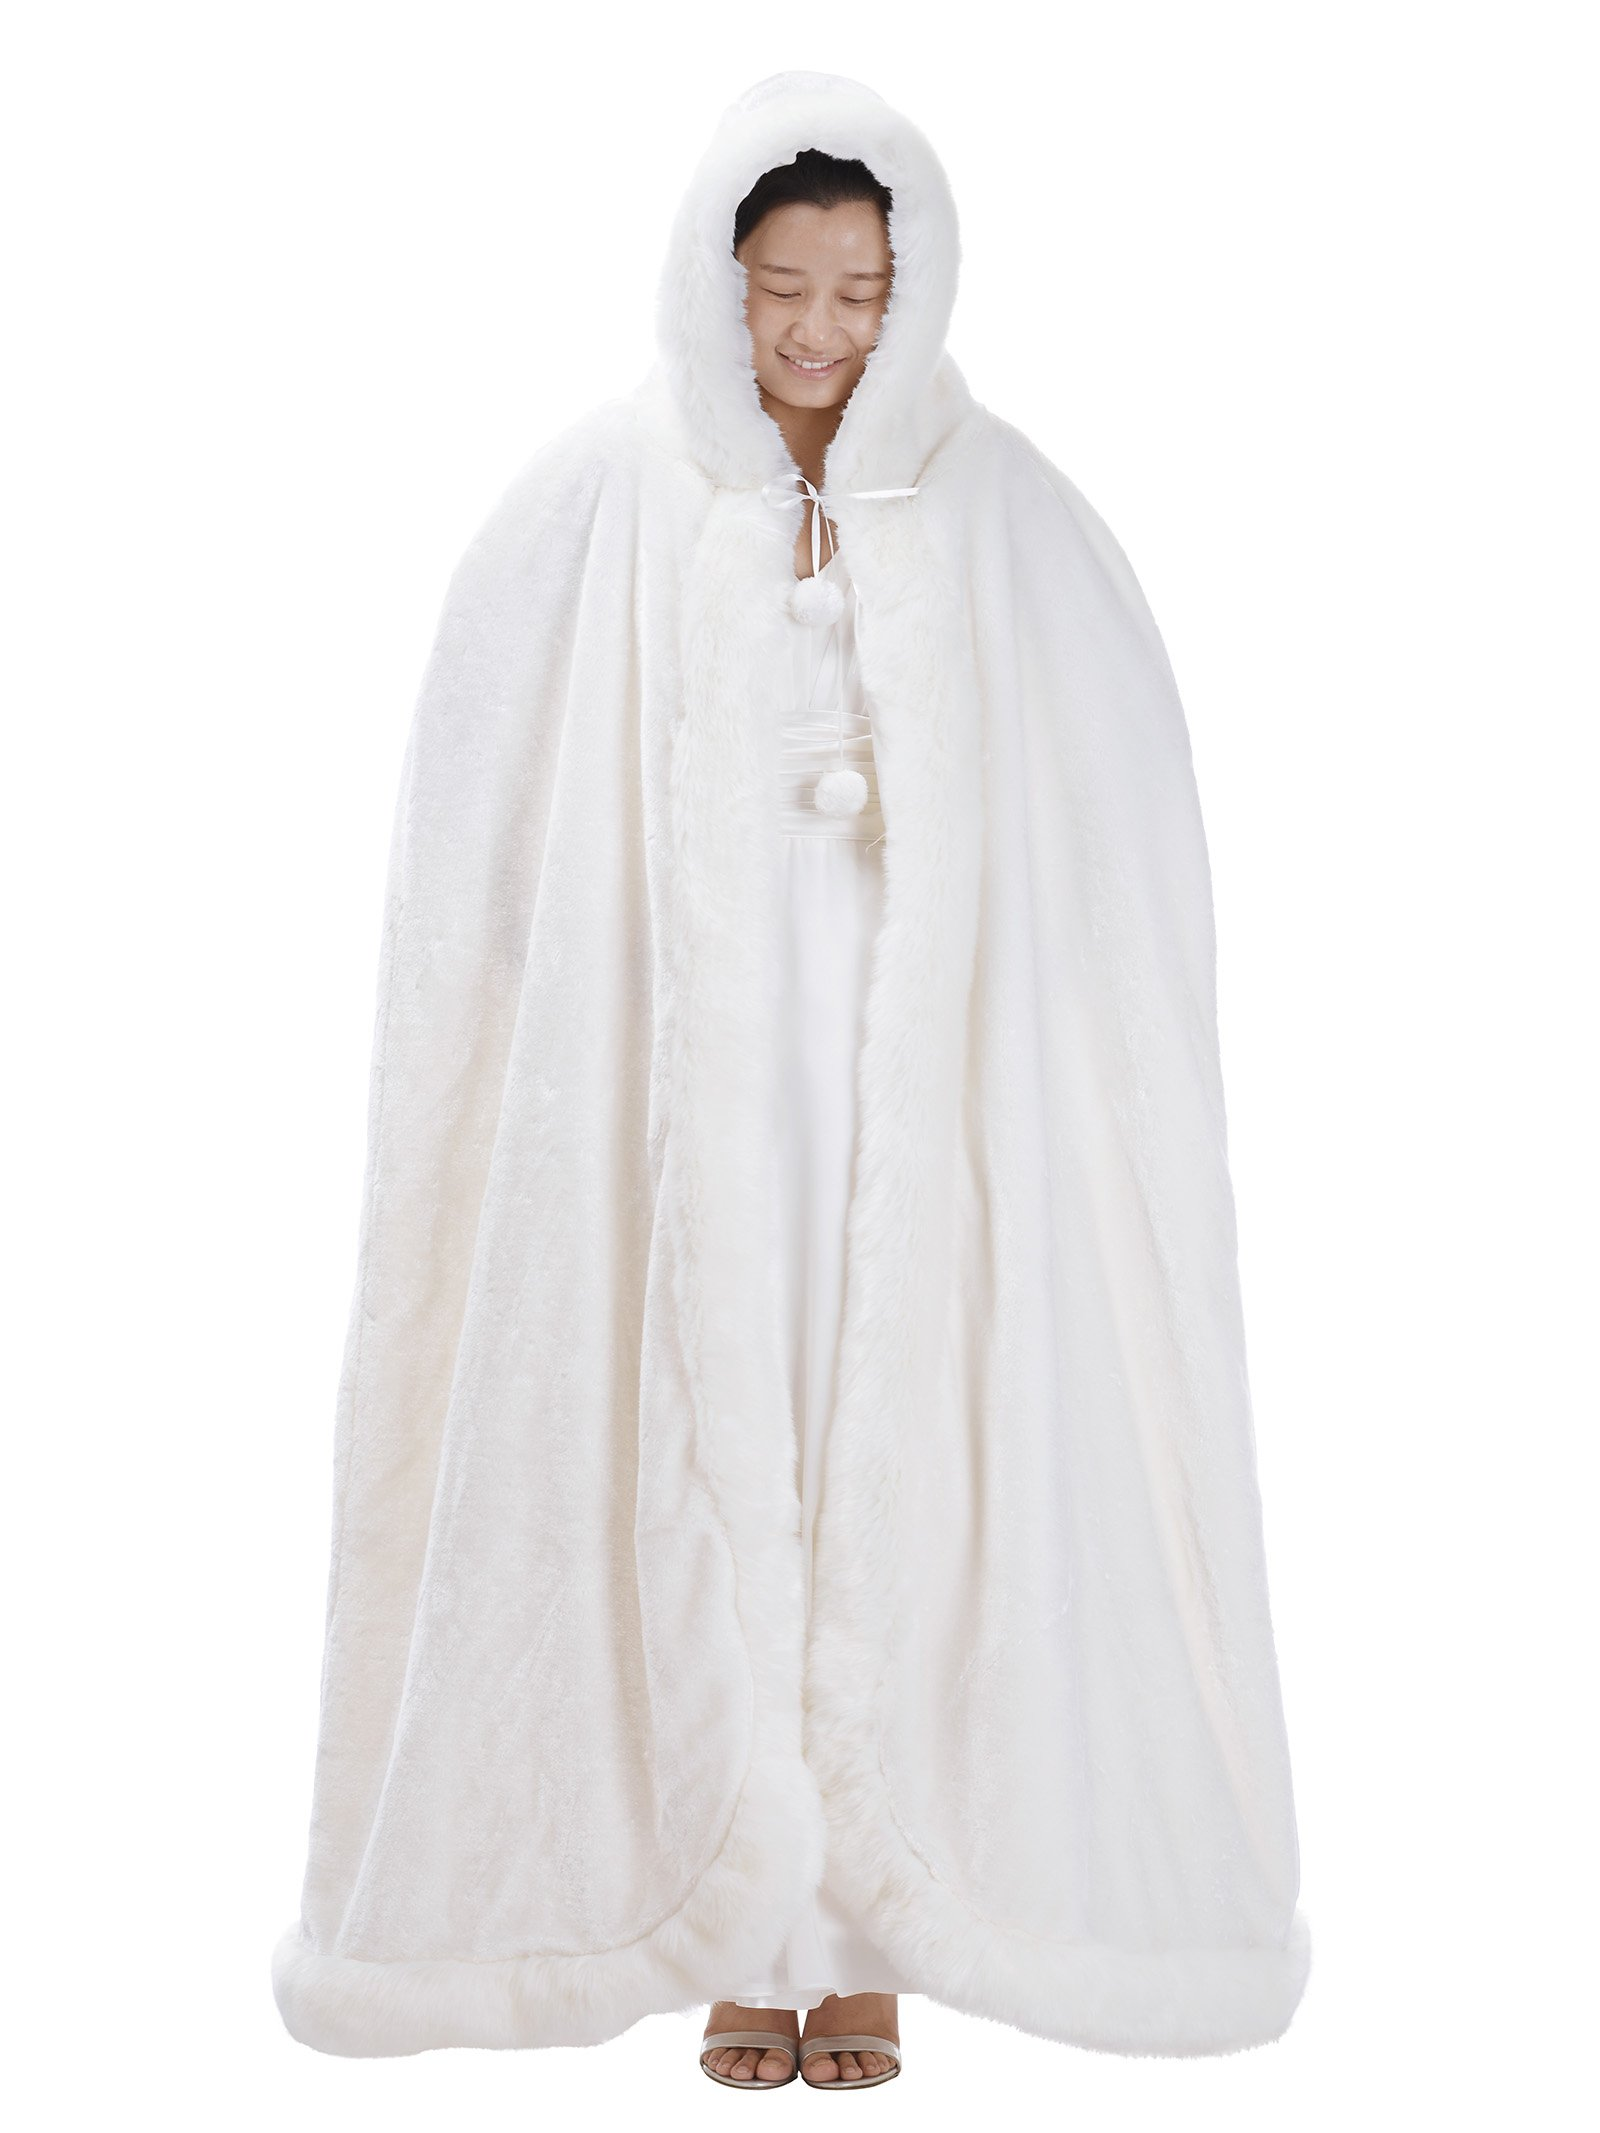 Remedios Ivory Full Length Birdal Wedding Hooded Cape Evening Party Wrap Poncho, S